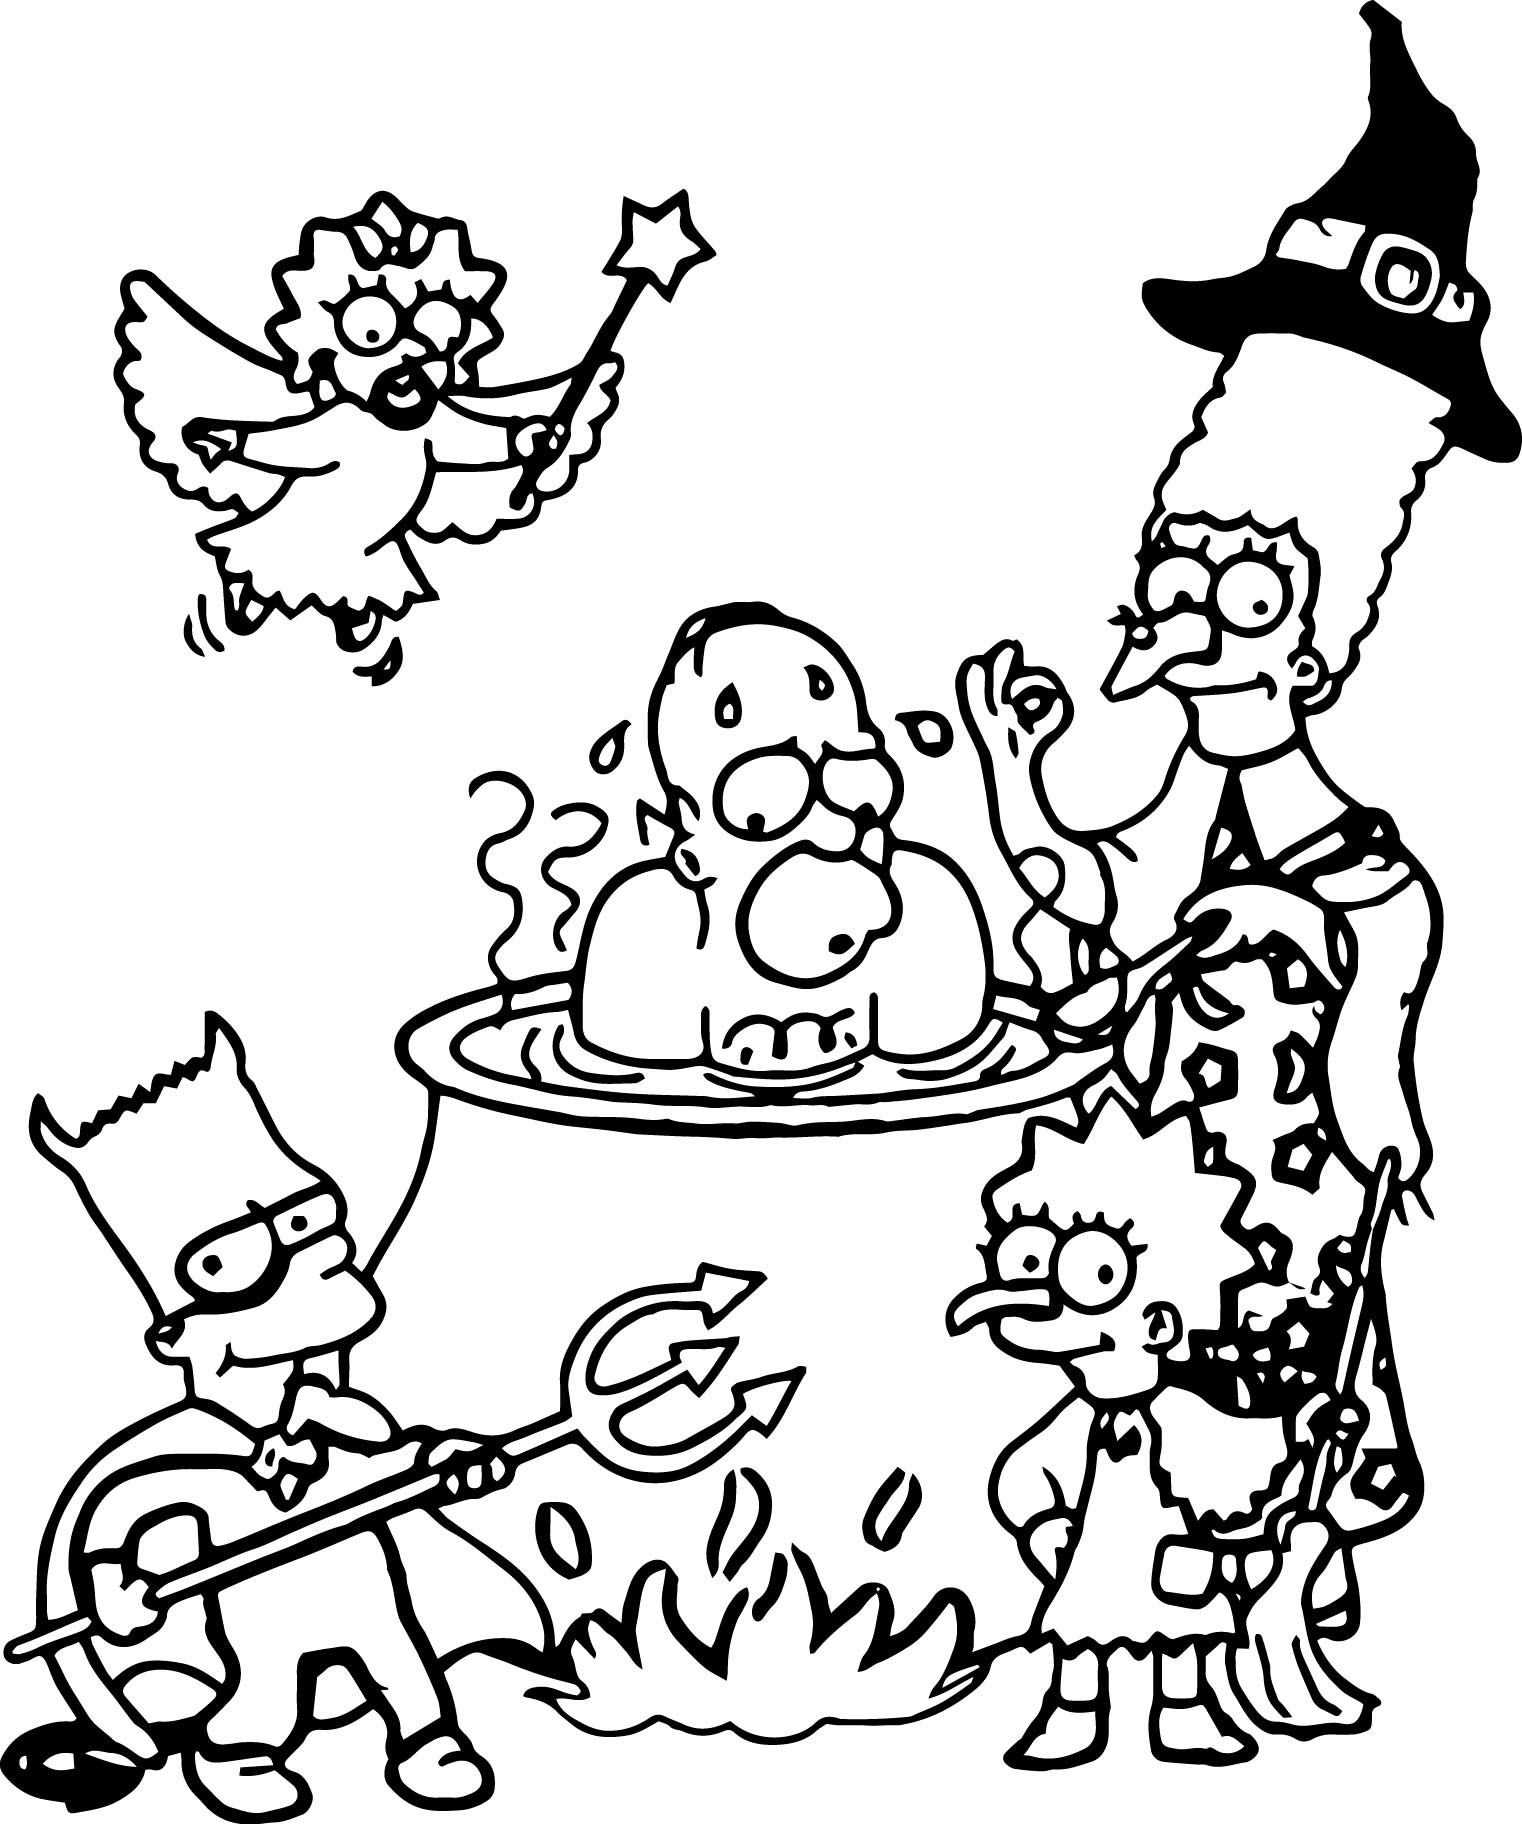 1522x1824 Simpsons Colouring Sheets Little Einstein Books Coloring Pages